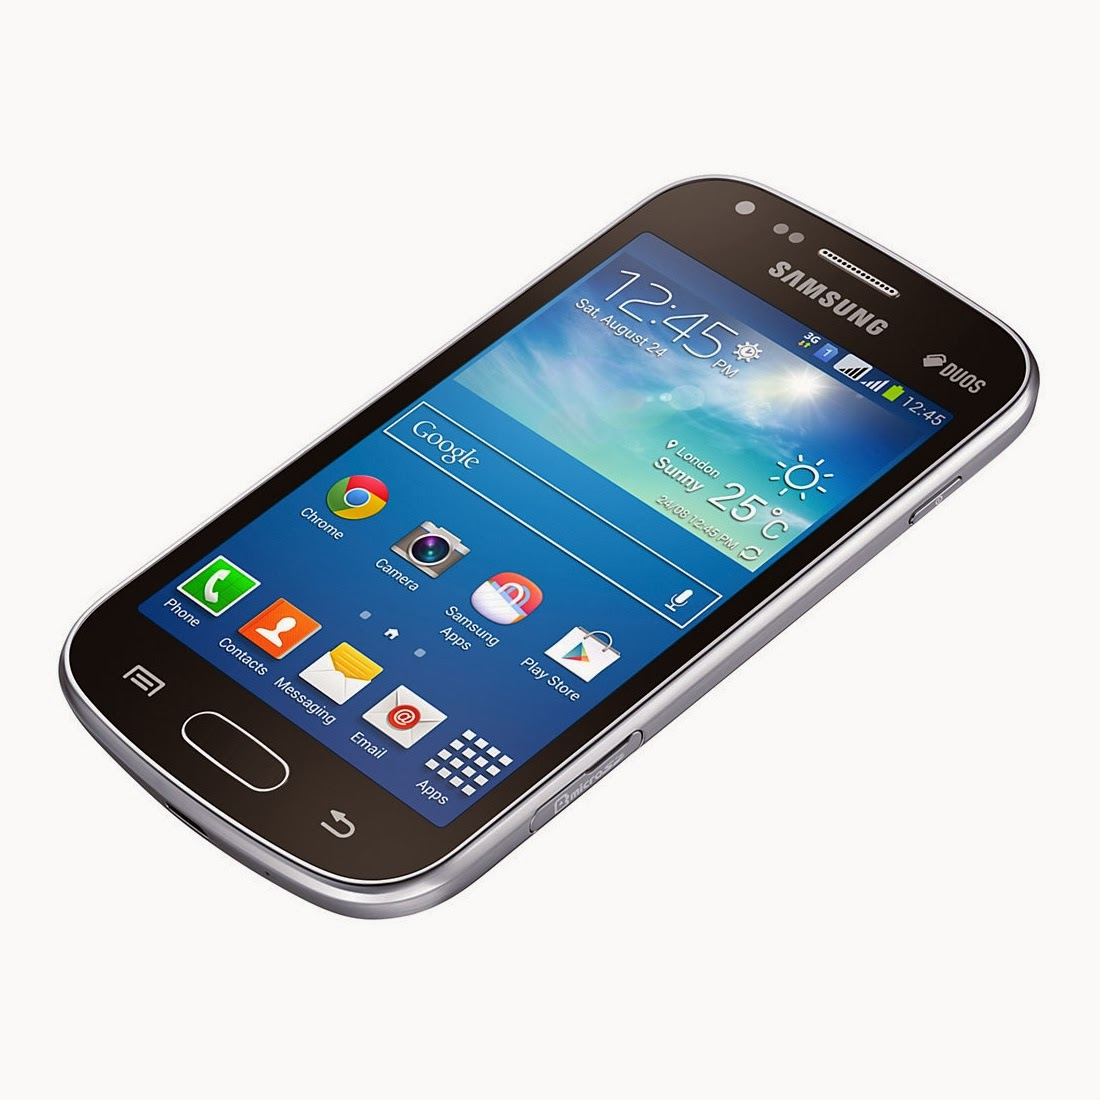 Samsung-Galaxy-S-Duos-2-Official-2.jpg